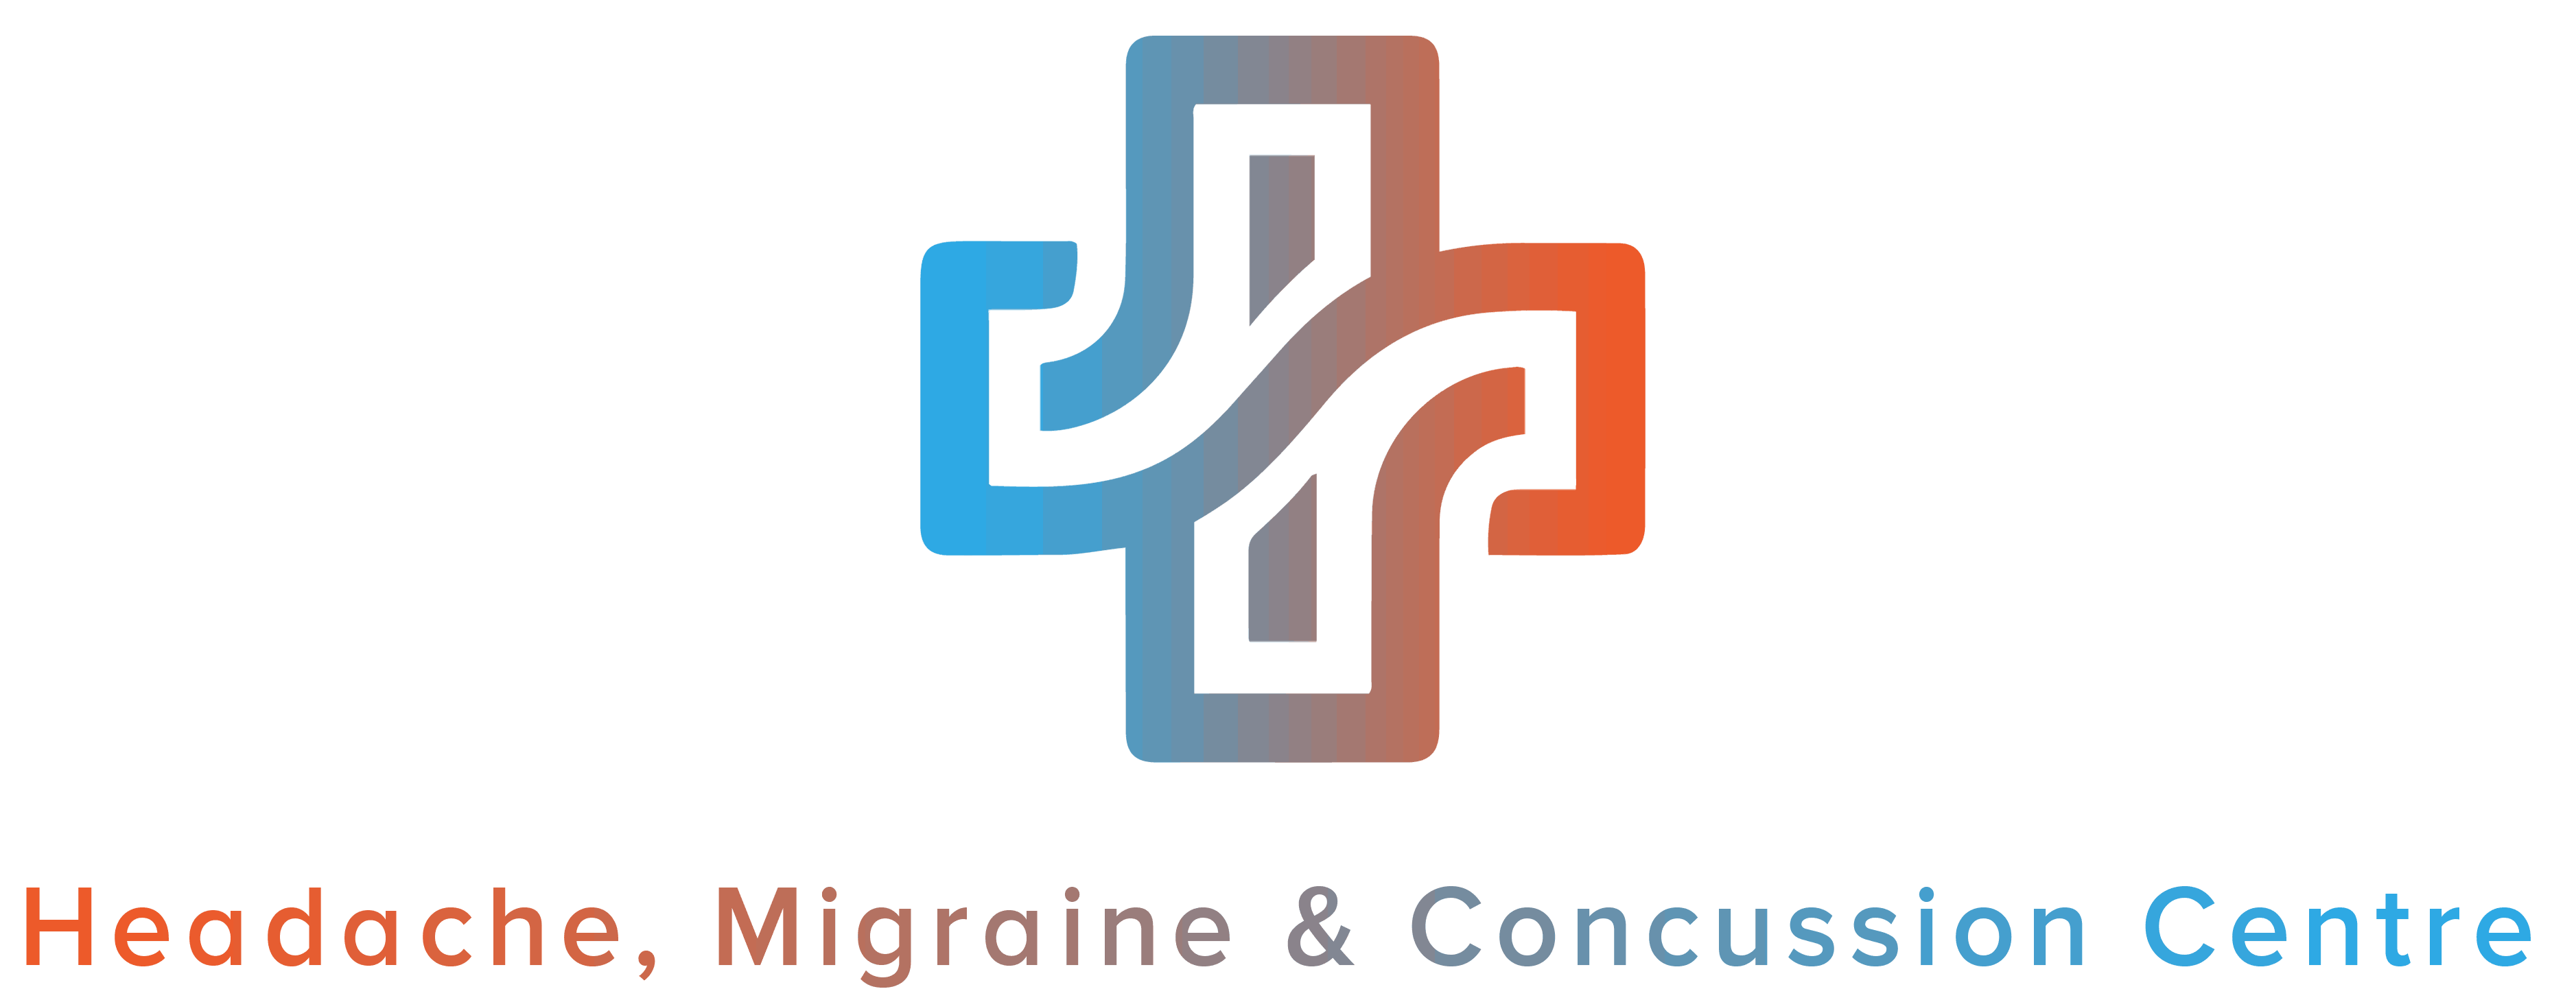 Headache, Migraine & Concussion Center Logo